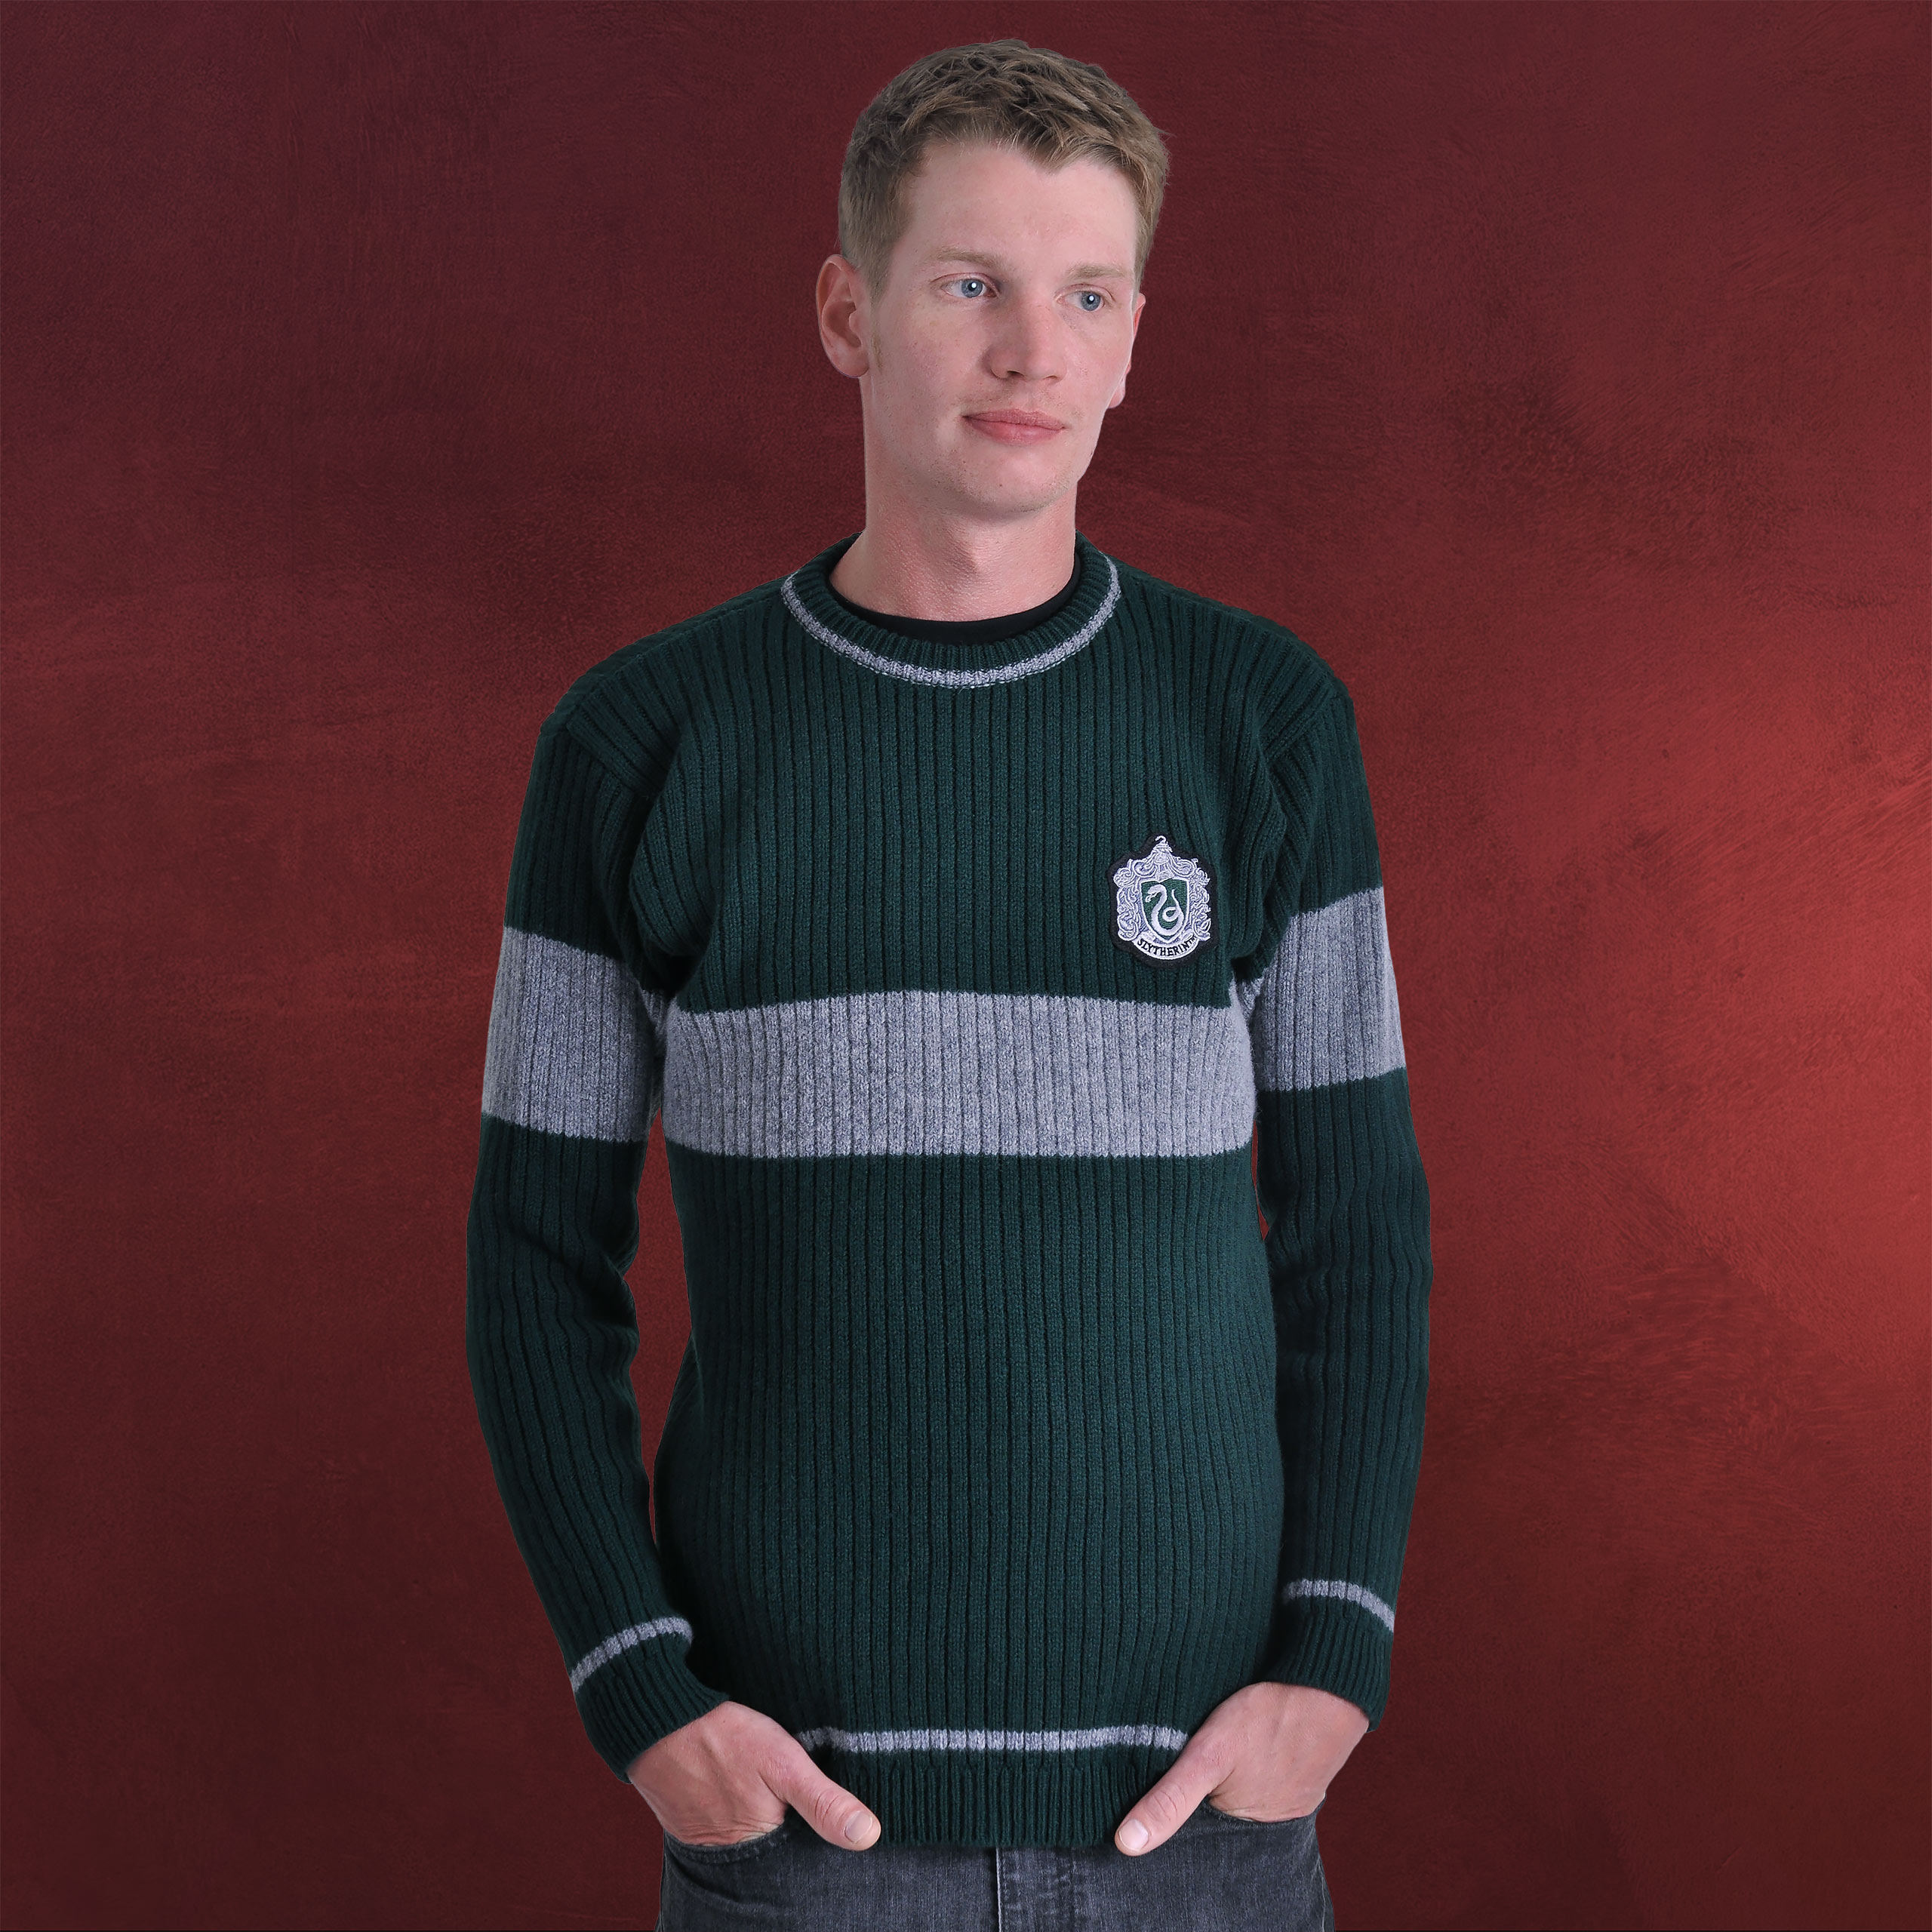 5af9c9b9f2f Harry Potter - Quidditch Sweater Slytherin